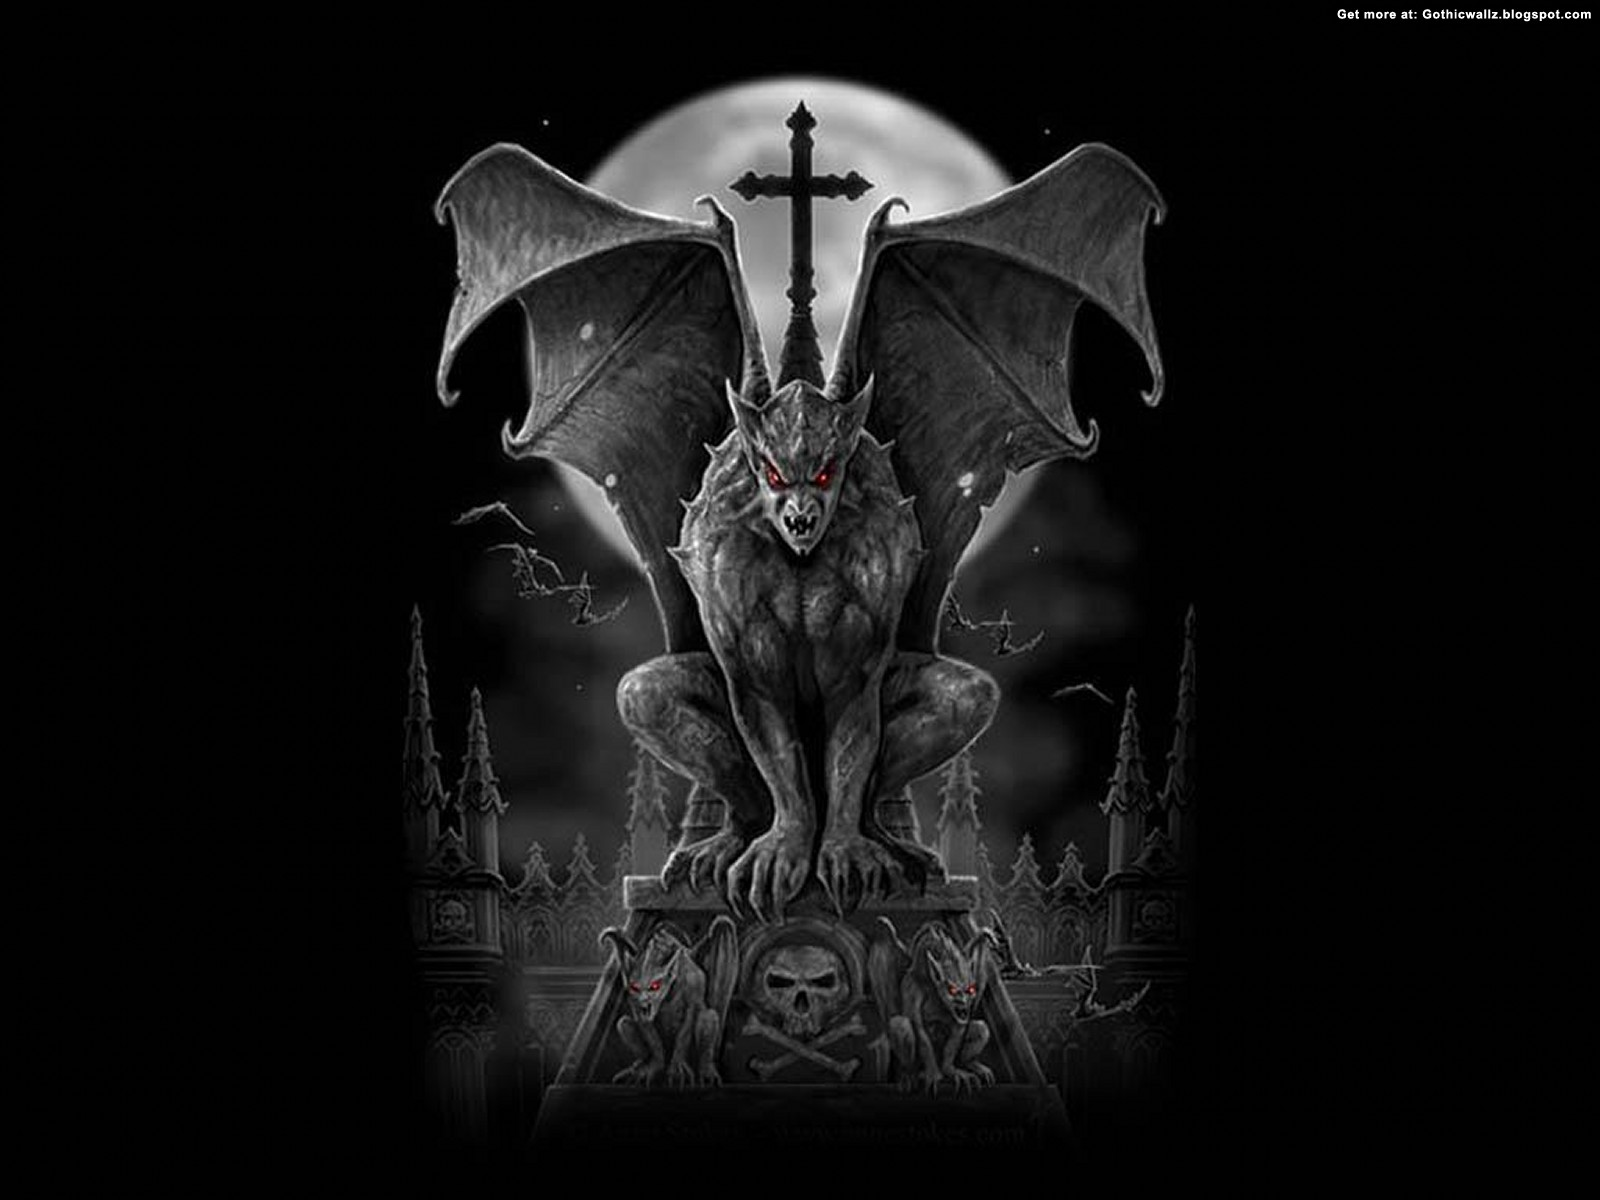 Classic Gothic | Gothic Wallpaper Download